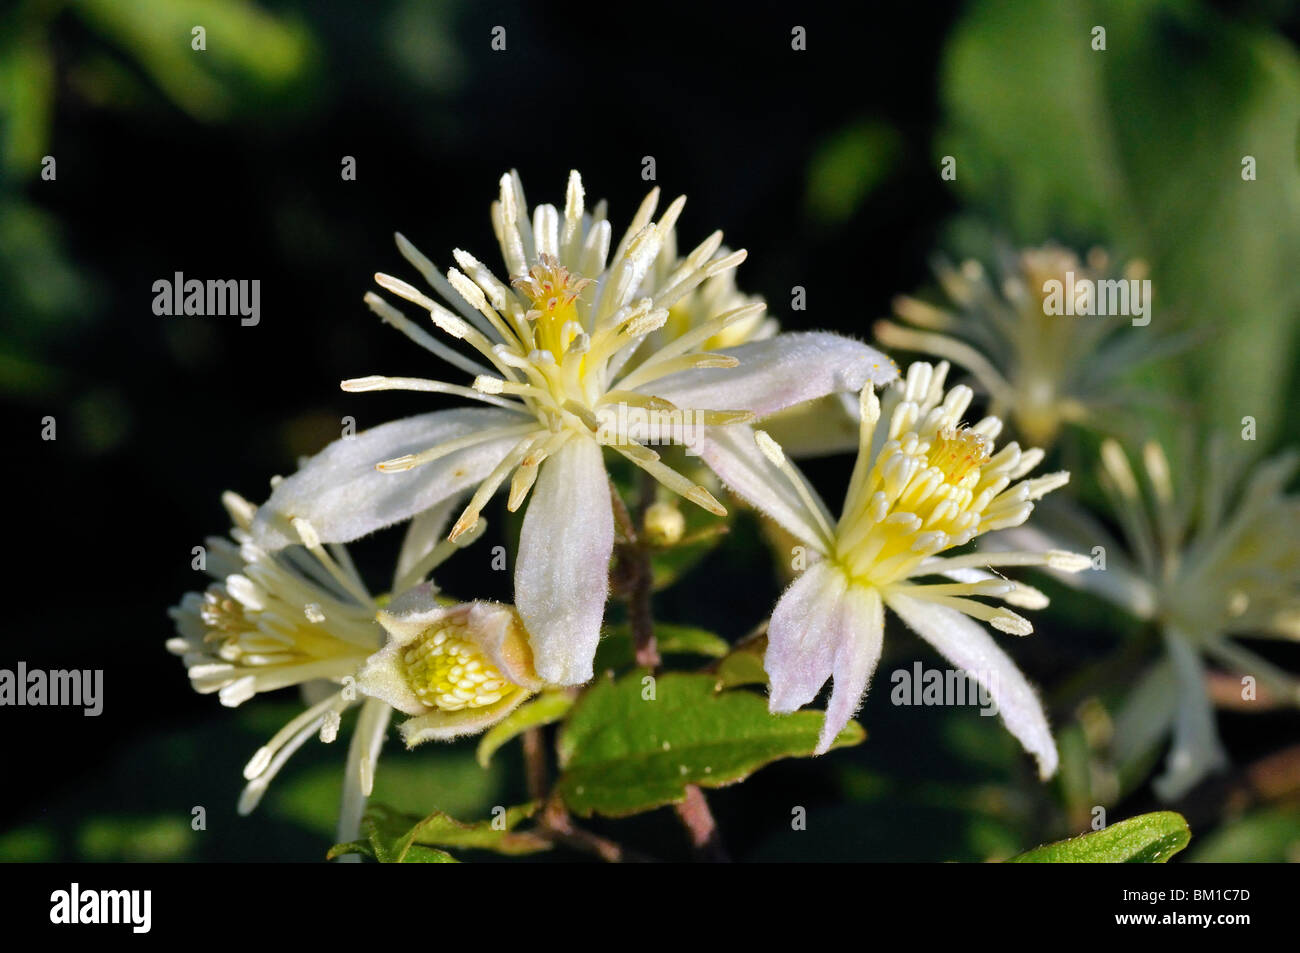 Clematis vitalba, Old man's beard or Traveller's Joy - Stock Image